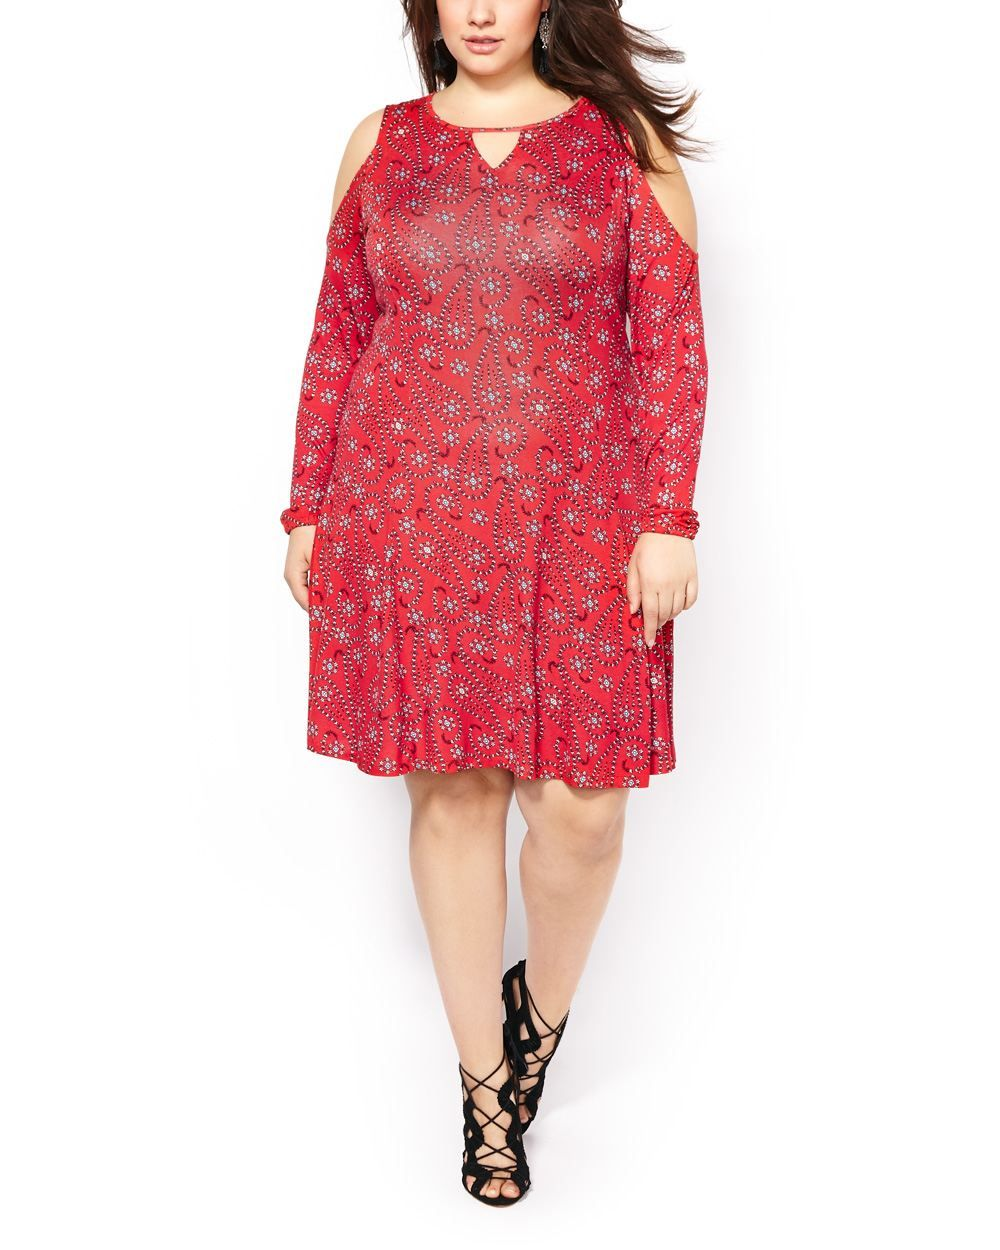 Start your spring wardrobe with this gorgeous plussize dress you